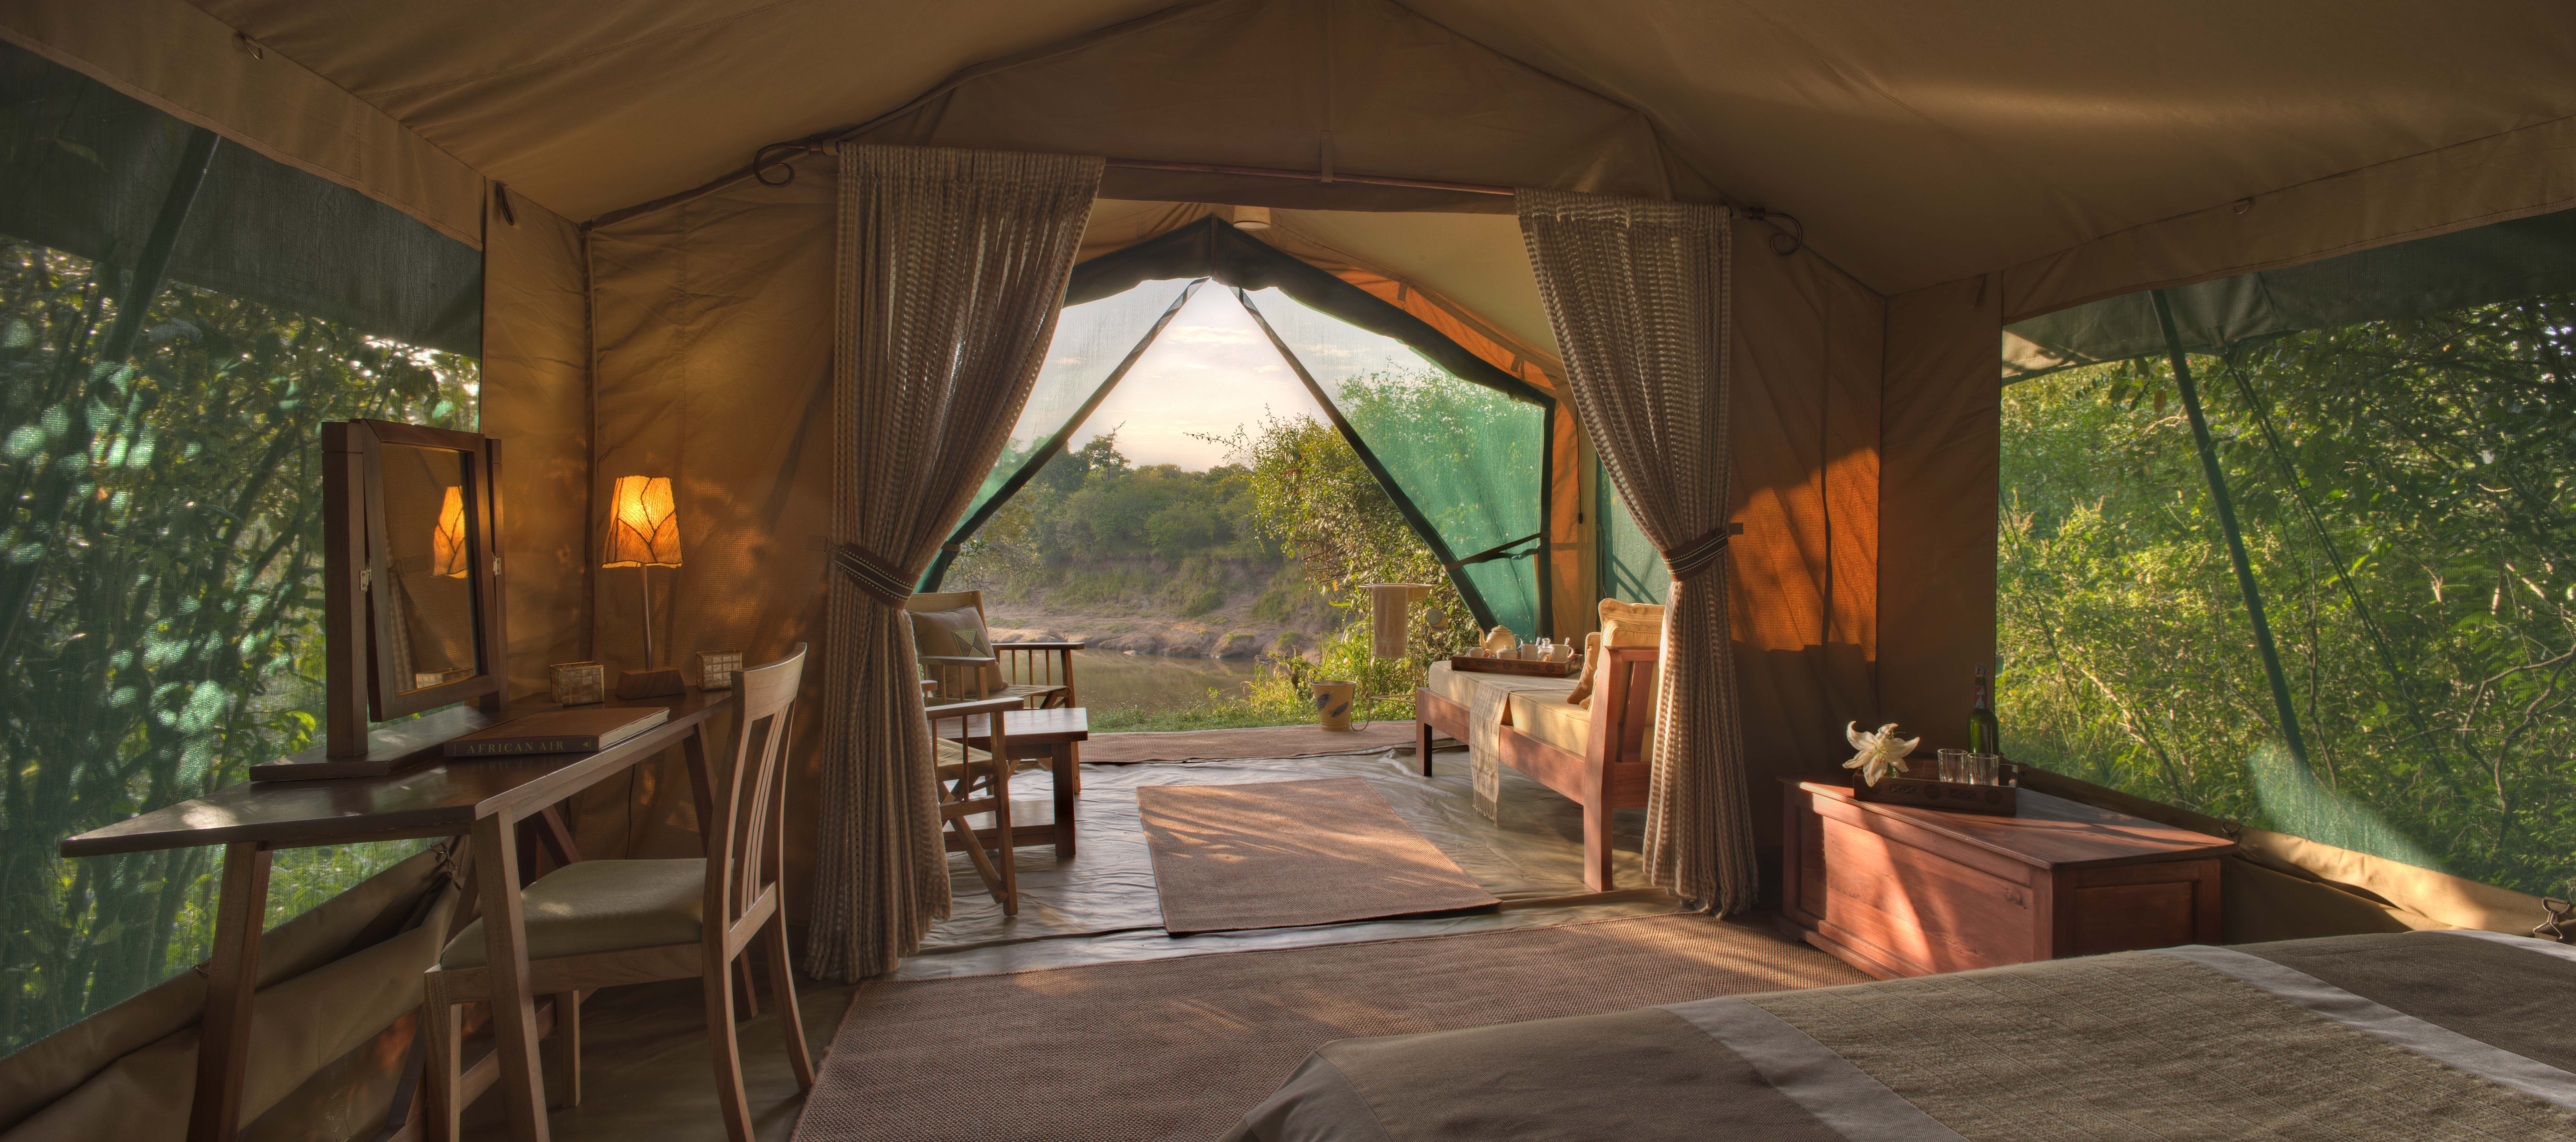 rekero-view-from-guest-tent